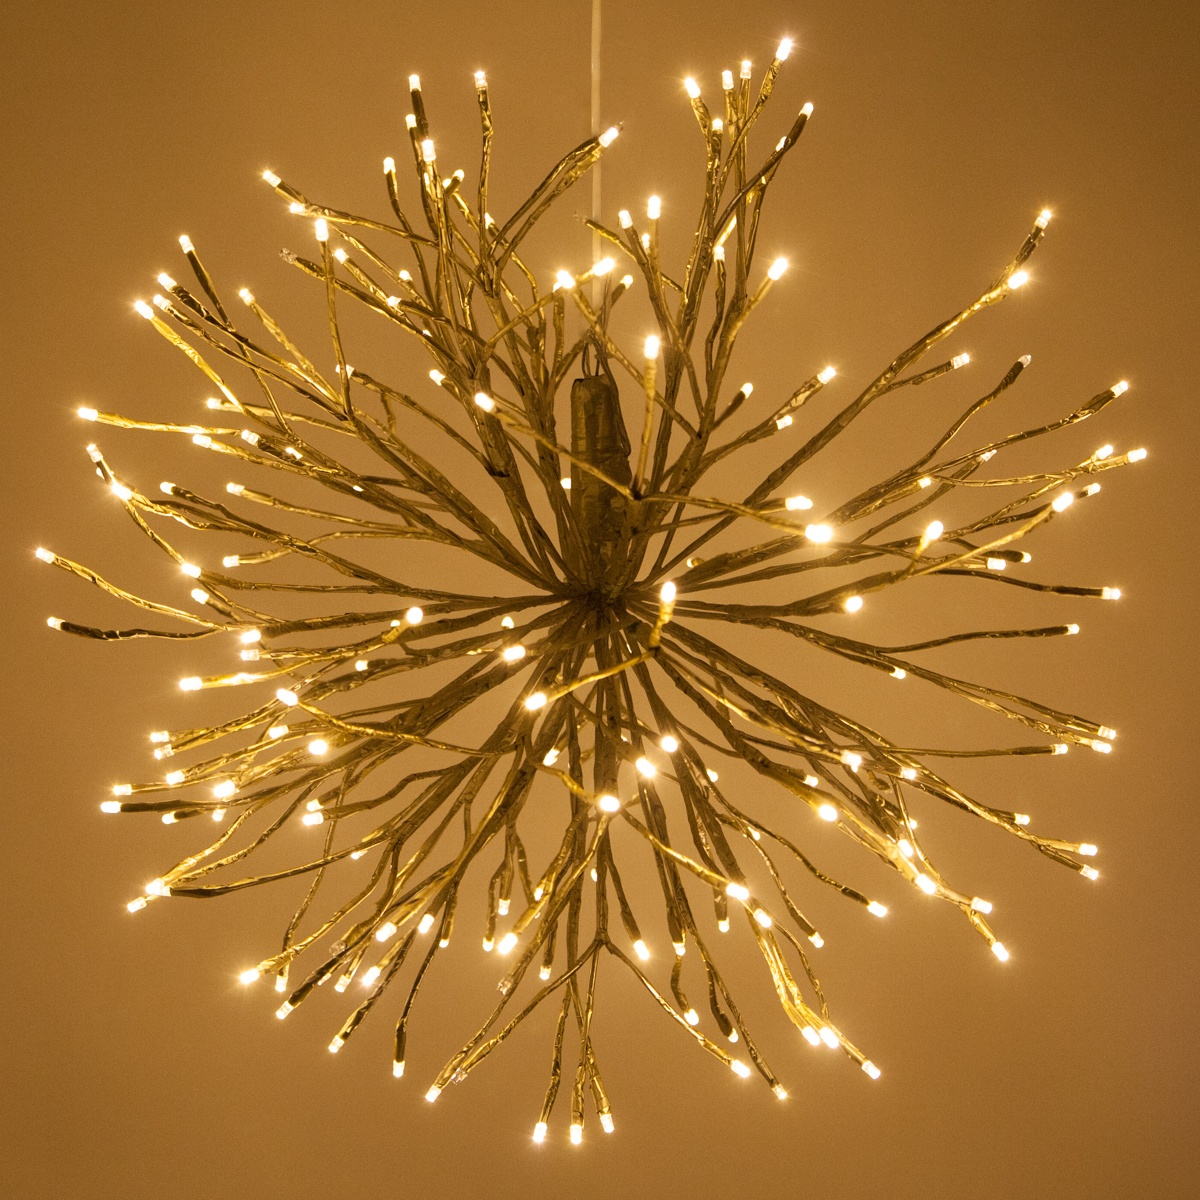 Led Rope Lights For Home Gold Starburst Lighted Branches With Warm White Led